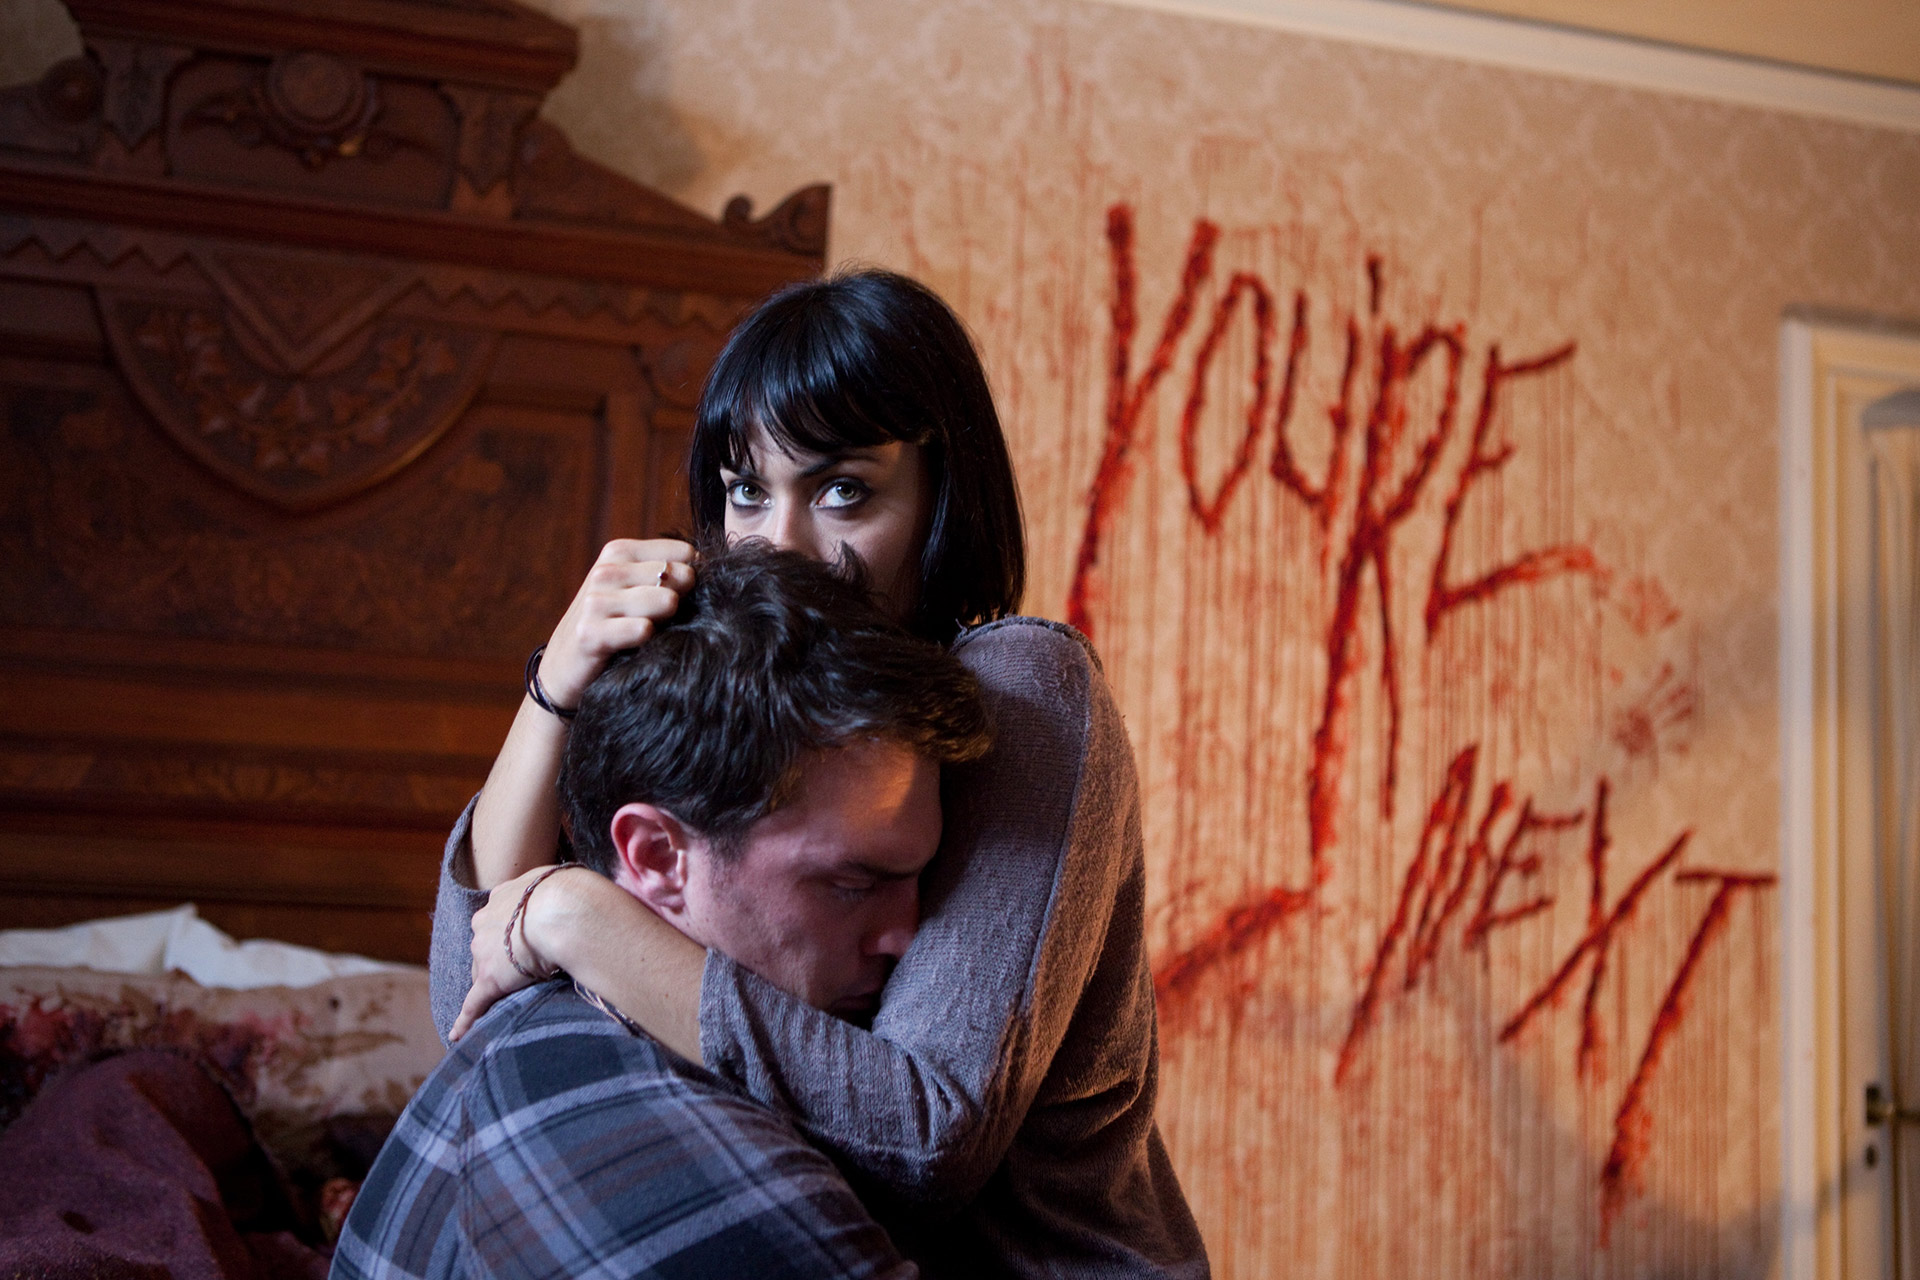 You're Next (Wingard, 2011)